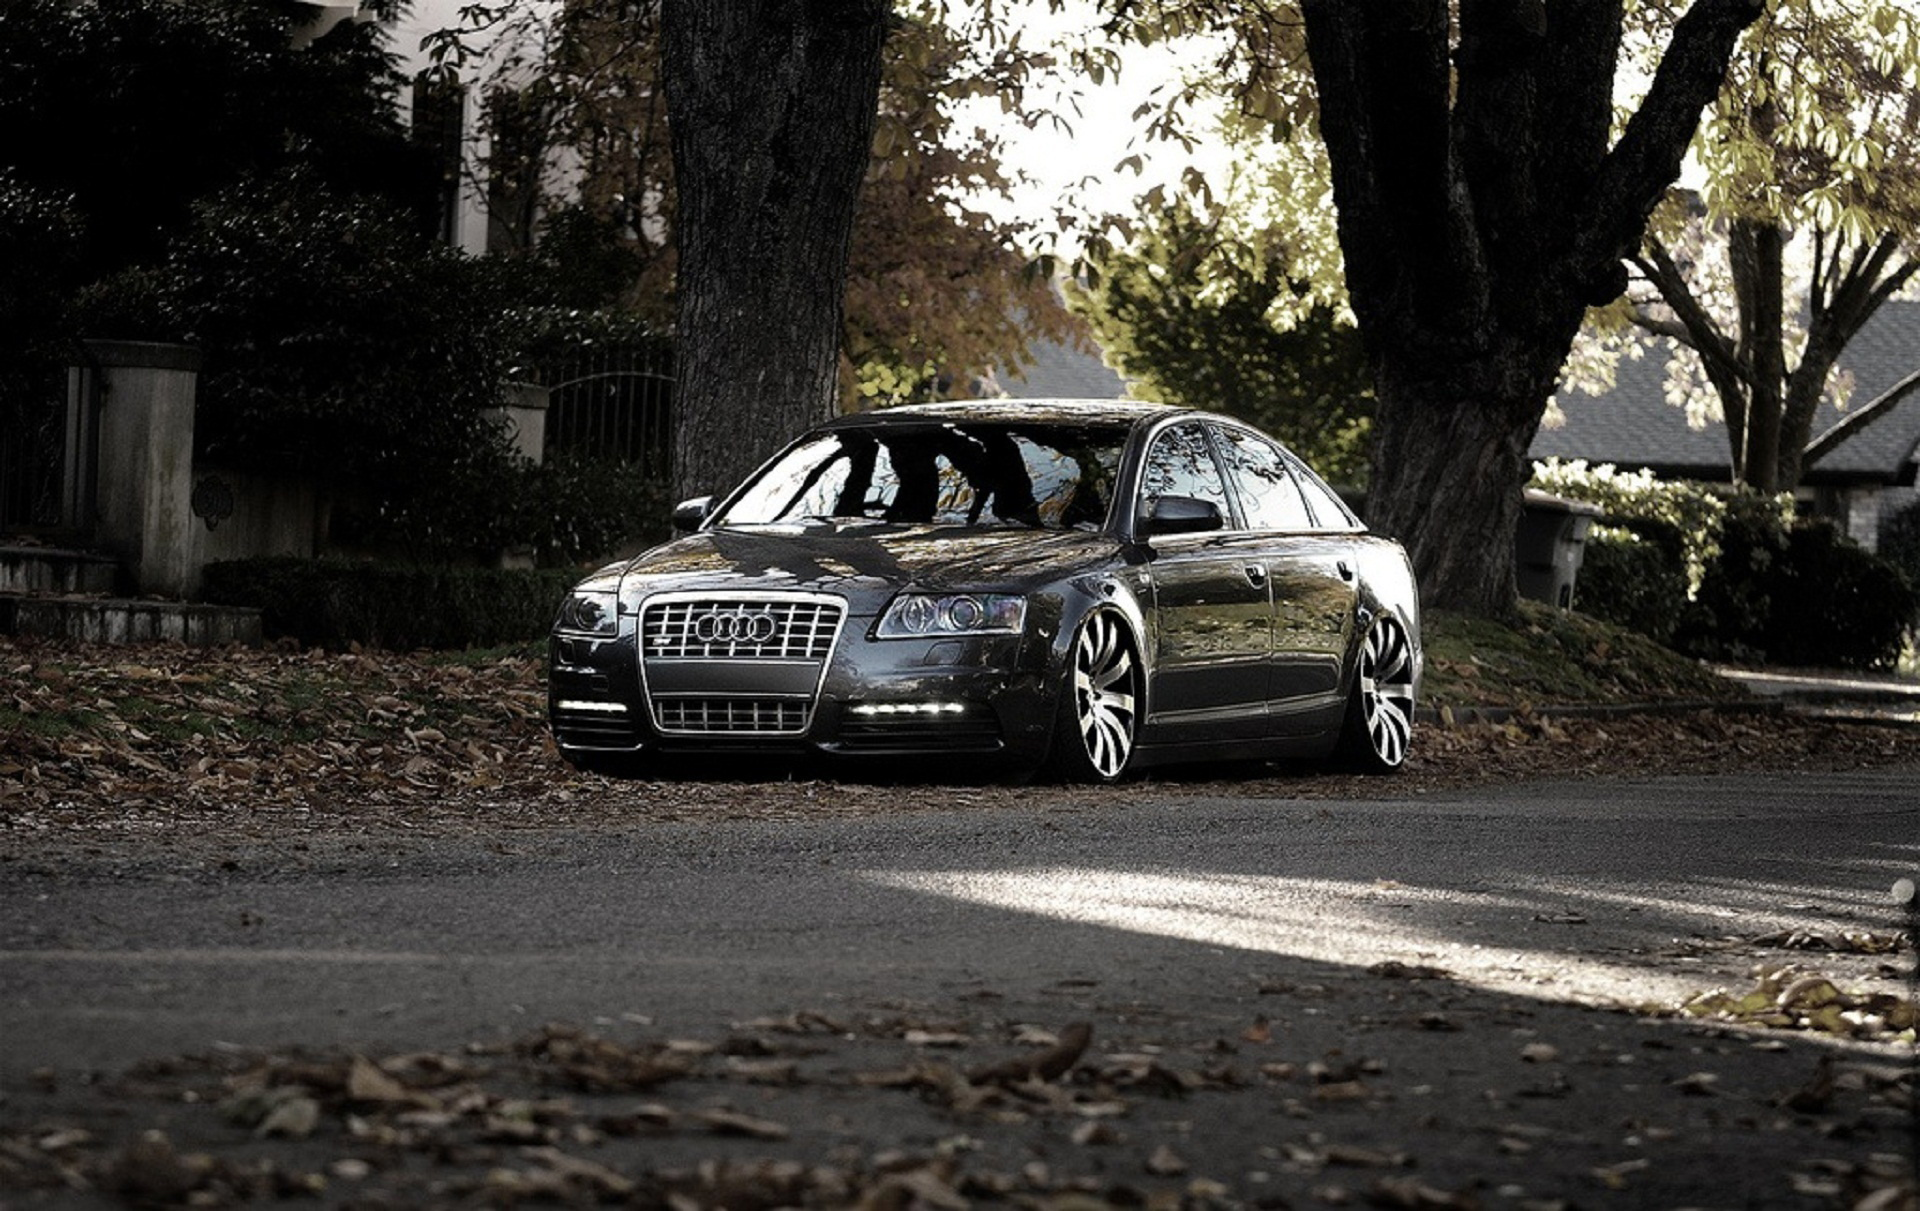 1920x1211 - Audi A6 Wallpapers 24